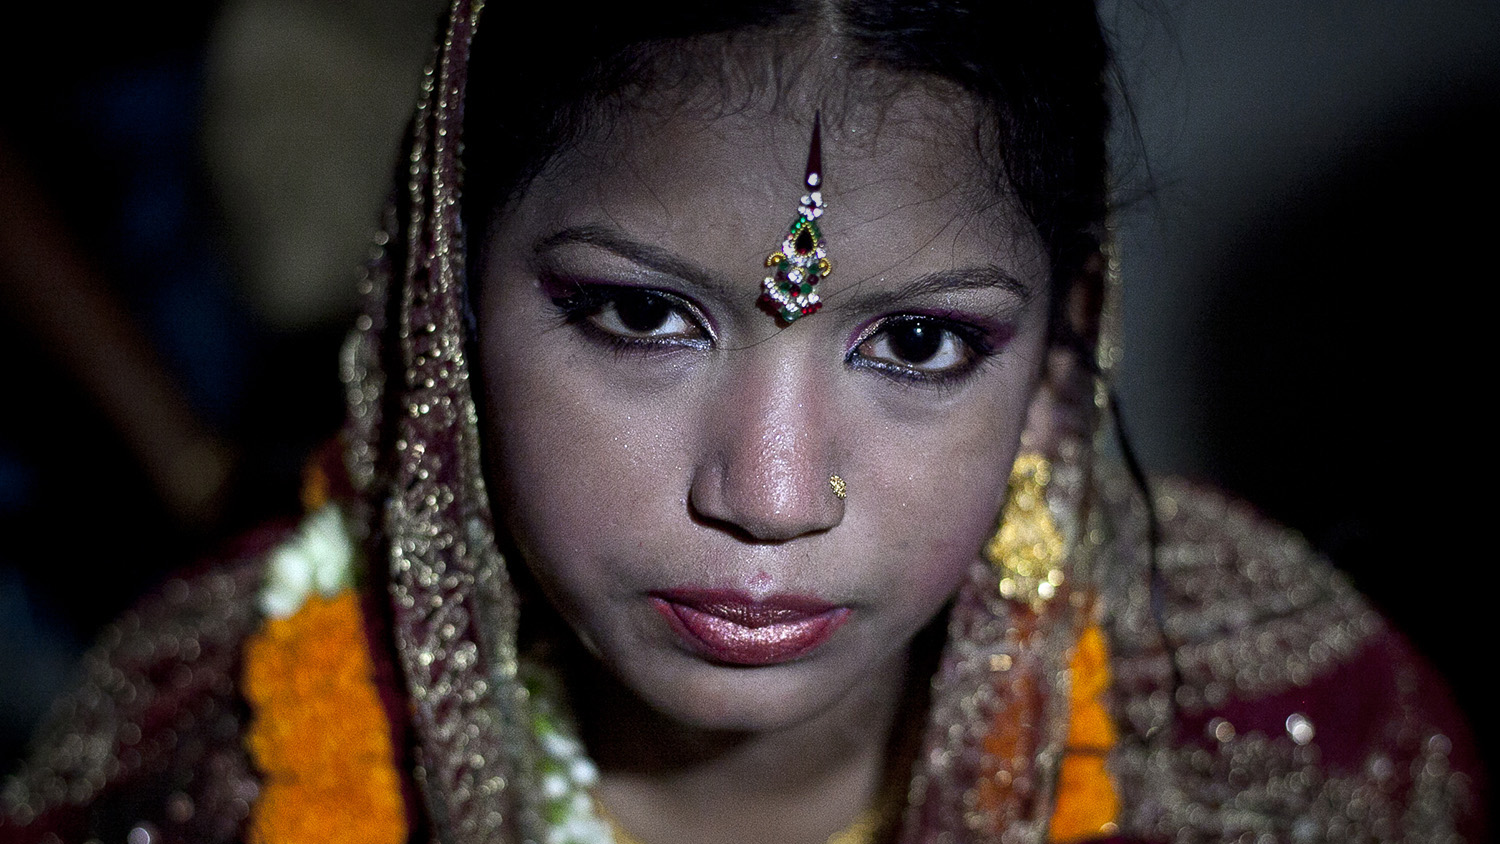 "13 year old Runa Akhter is seen the day of her wedding to a 29 year old man August 29, 2014 in Manikganj, Bangladesh. Runa was in the 7th grade, and loved reading, sports and traveling. She wanted to wait until she was 21 to get married but, ""No boy want's to marry a girl older than 18 in my village"" she said. In June of this year, Human Rights Watch released a damning report about child marriage in Bangladesh. The country has one of the highest rates of child marriage in the world, with 29% of girls marrying before the age of 15, and 65% of girls marrying before they turn 18. The detrimental effects of early marriage on a girl cannot be overstated. Most young brides drop out of school. Pregnant girls from 15-20 are twice as likely to die in childbirth than those 20 or older, while girls under 15 are at five times the risk. Research cites spousal age difference as a significant risk factor for violence and sexual abuse. Child marriage is attributed to both cultural tradition and poverty. Parents believe that it ""protects"" girls from sexual assault and harassment. Larger  dowries are not required for young girls, and economically, women's earnings are insignificant as compared to men's."